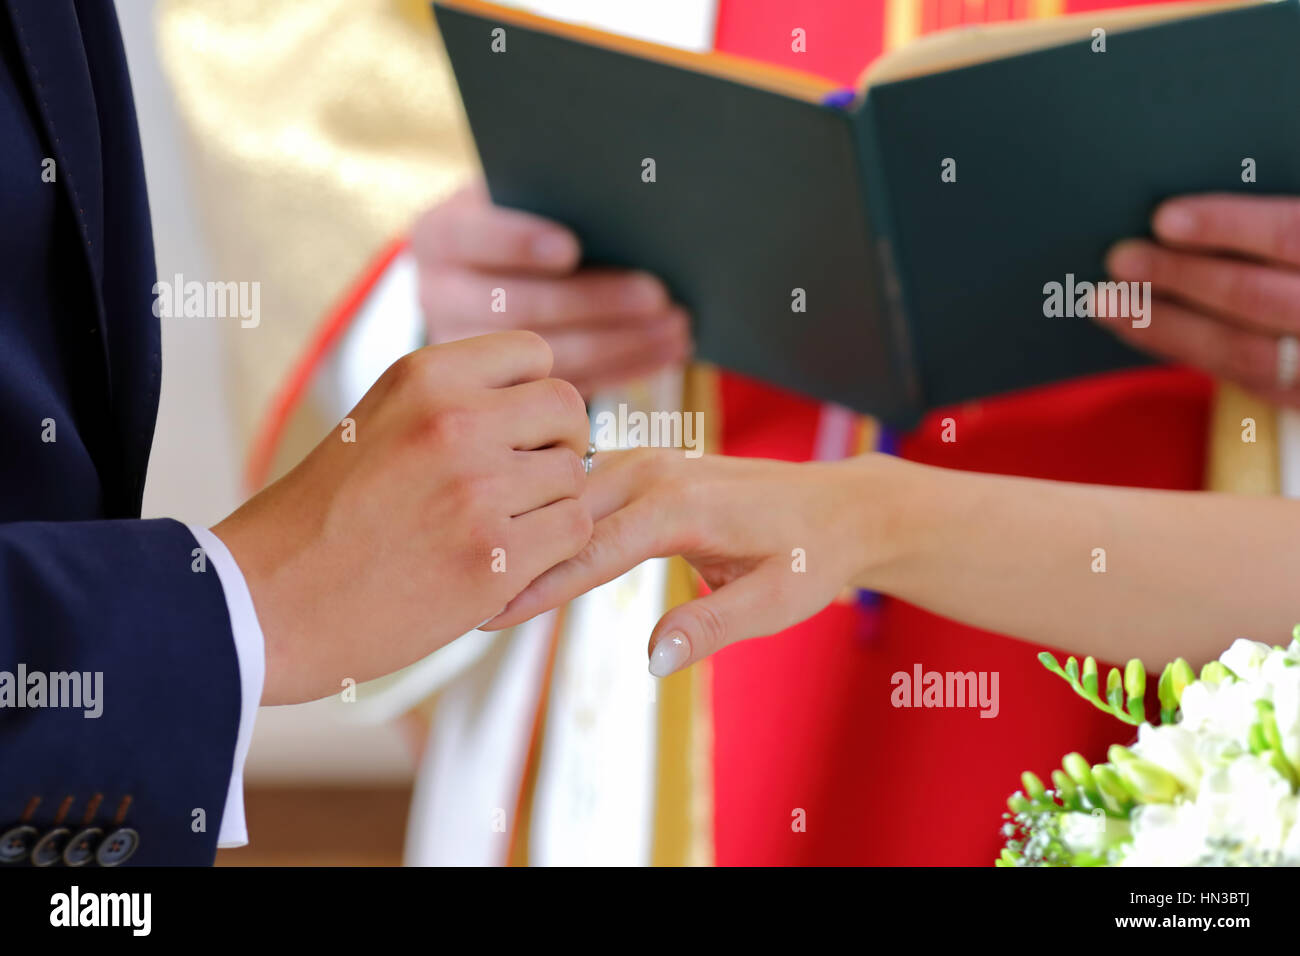 Bride and groom during wedding rings exchange at the church - Stock Image